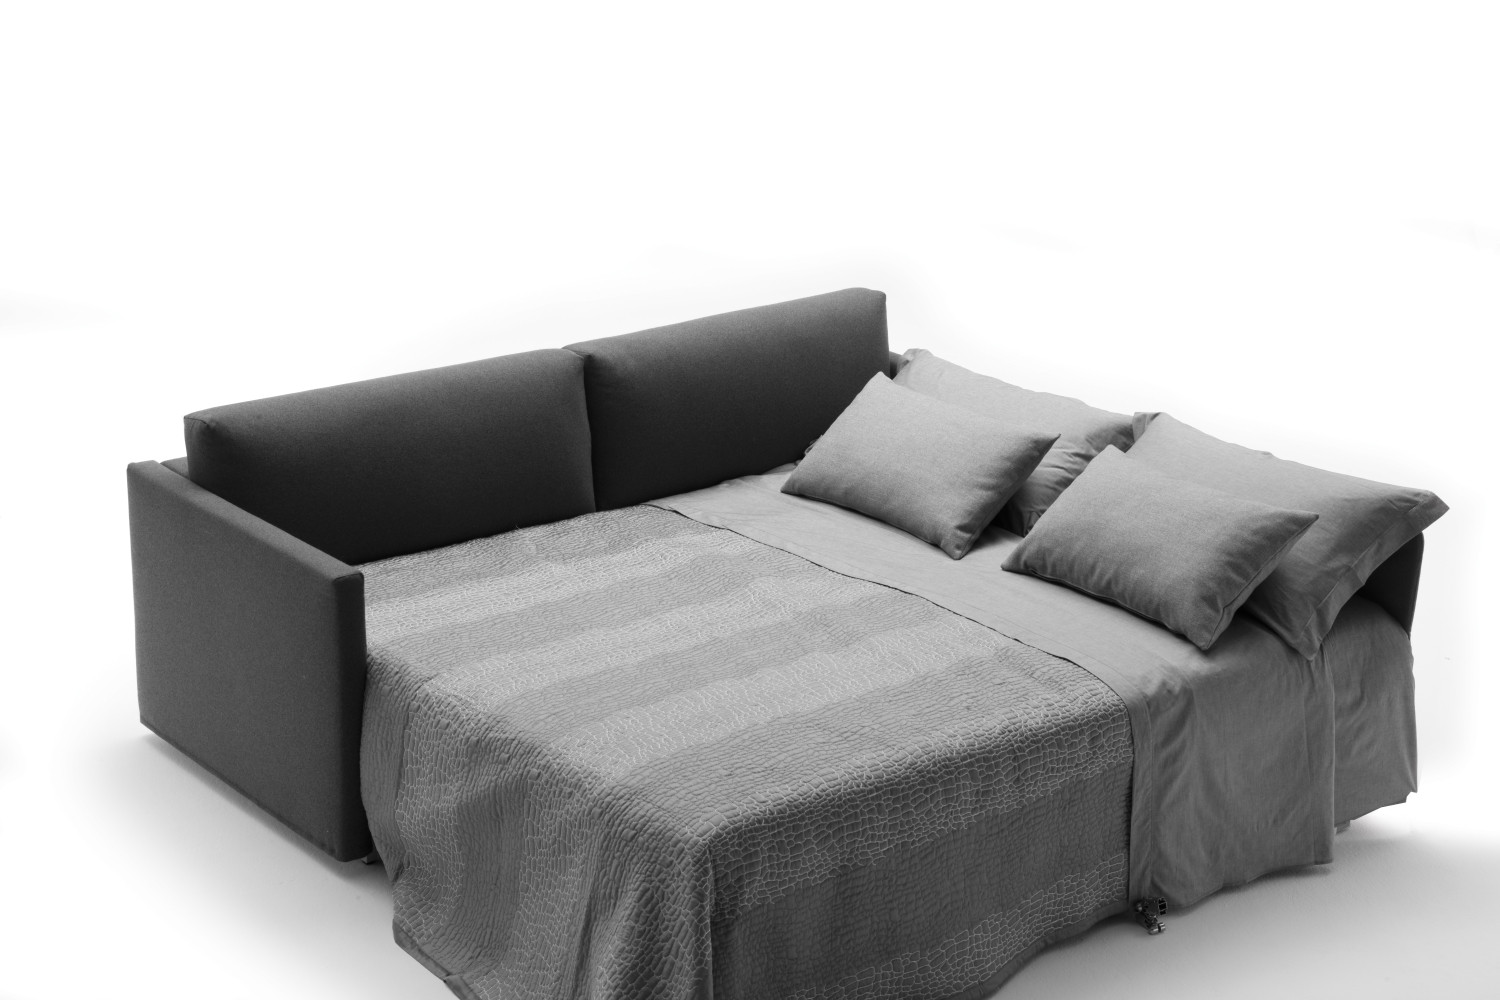 Frank sofa bed with extra mattress - Chatodax divano letto ...